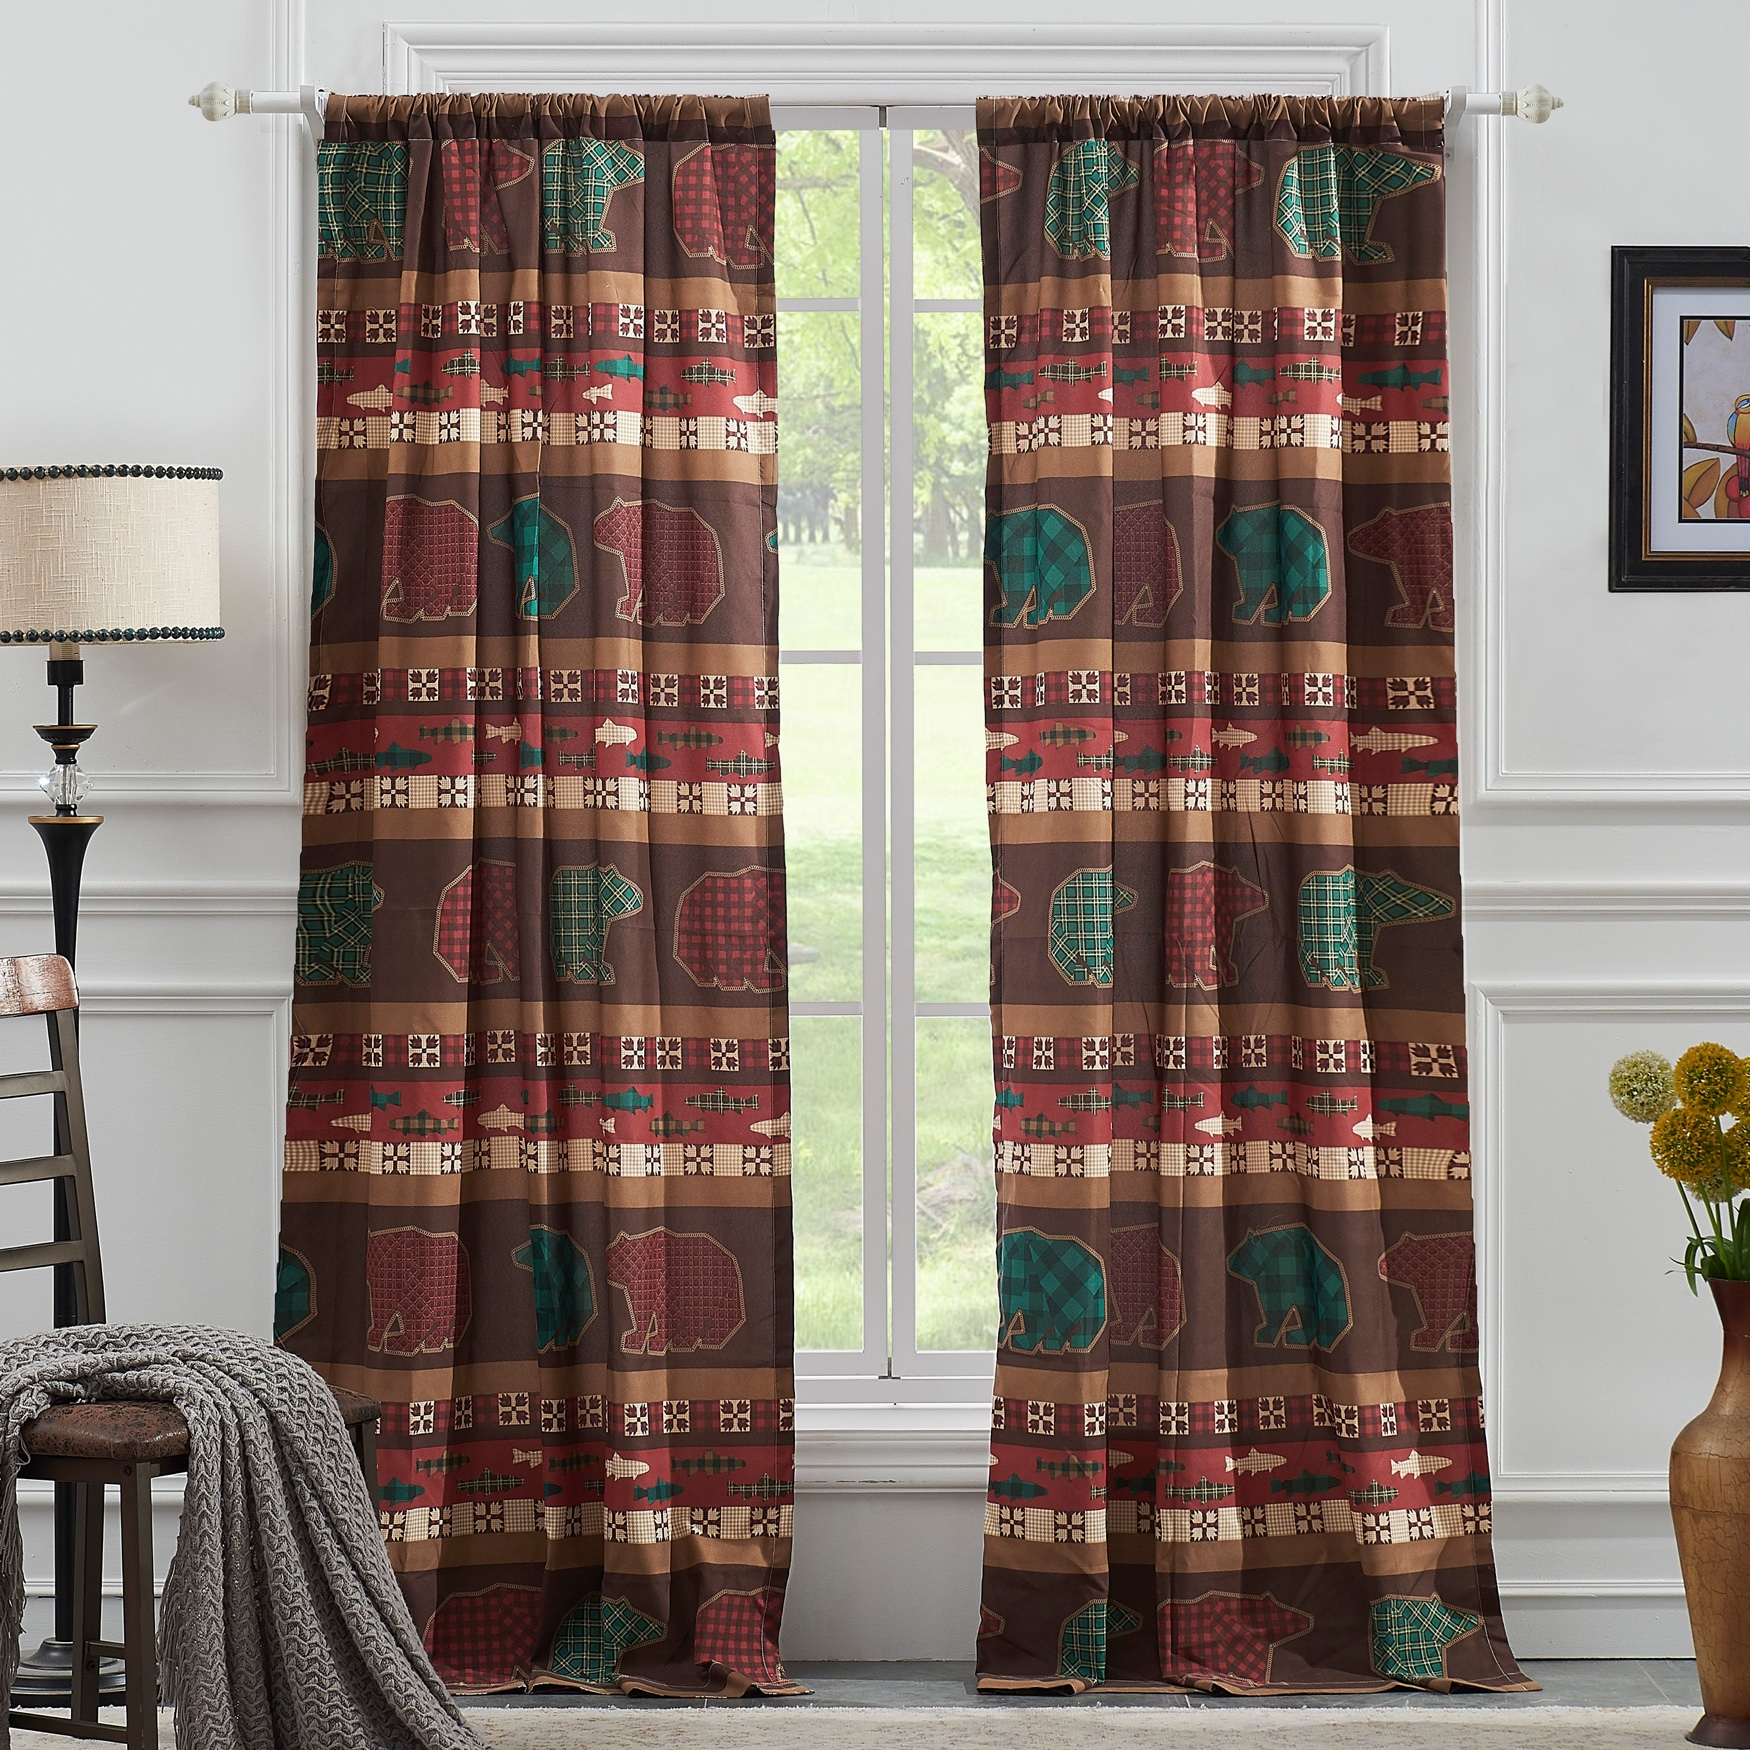 Canyon Creek Curtain Panel Pair by Greenland Home Fashions, MULTI